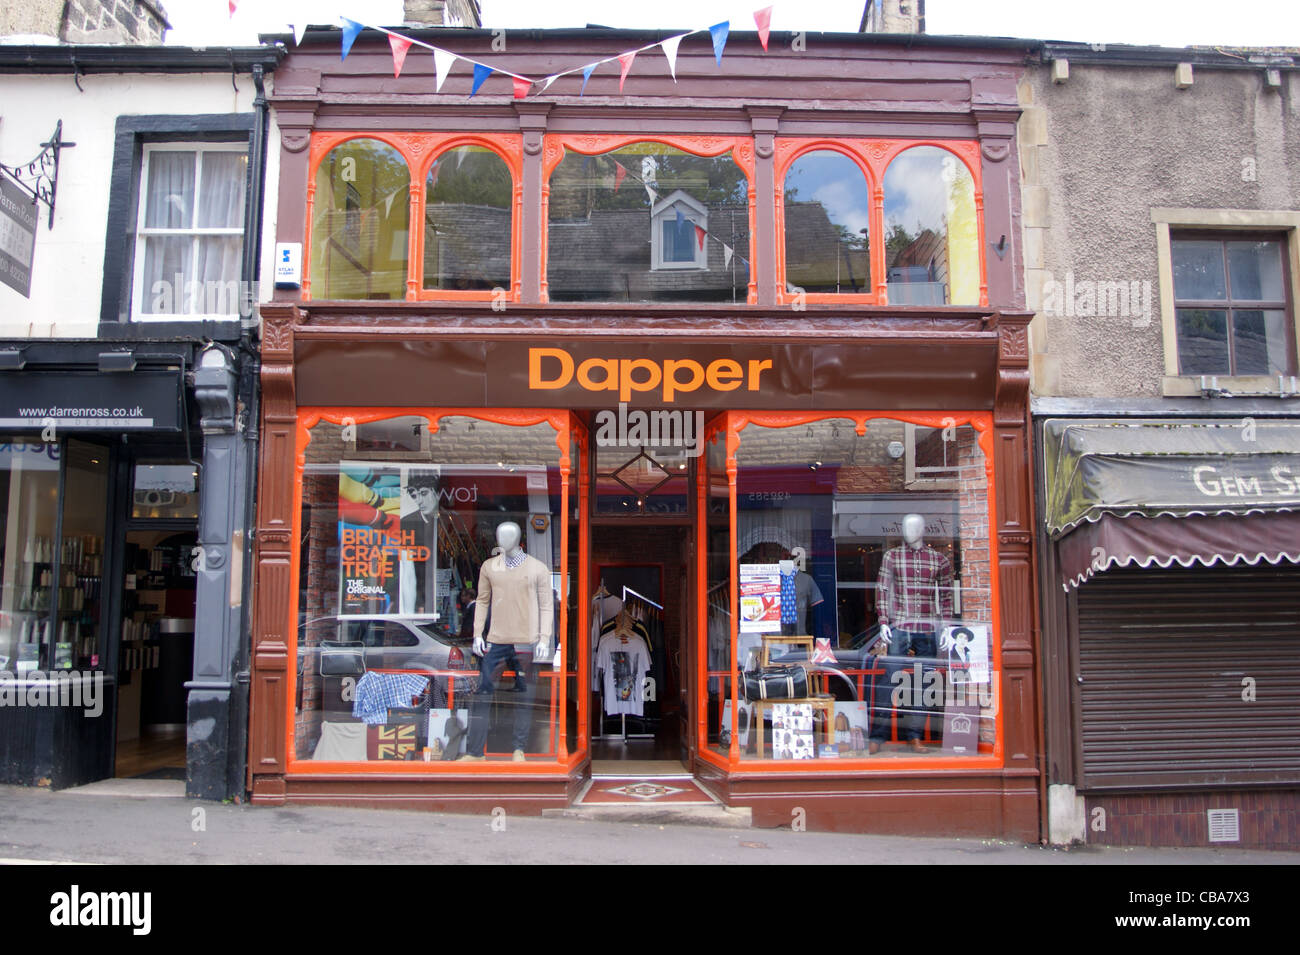 dapper-shopfront-of-gents-outfitters-clitheroe-lancashire-CBA7X3.jpg